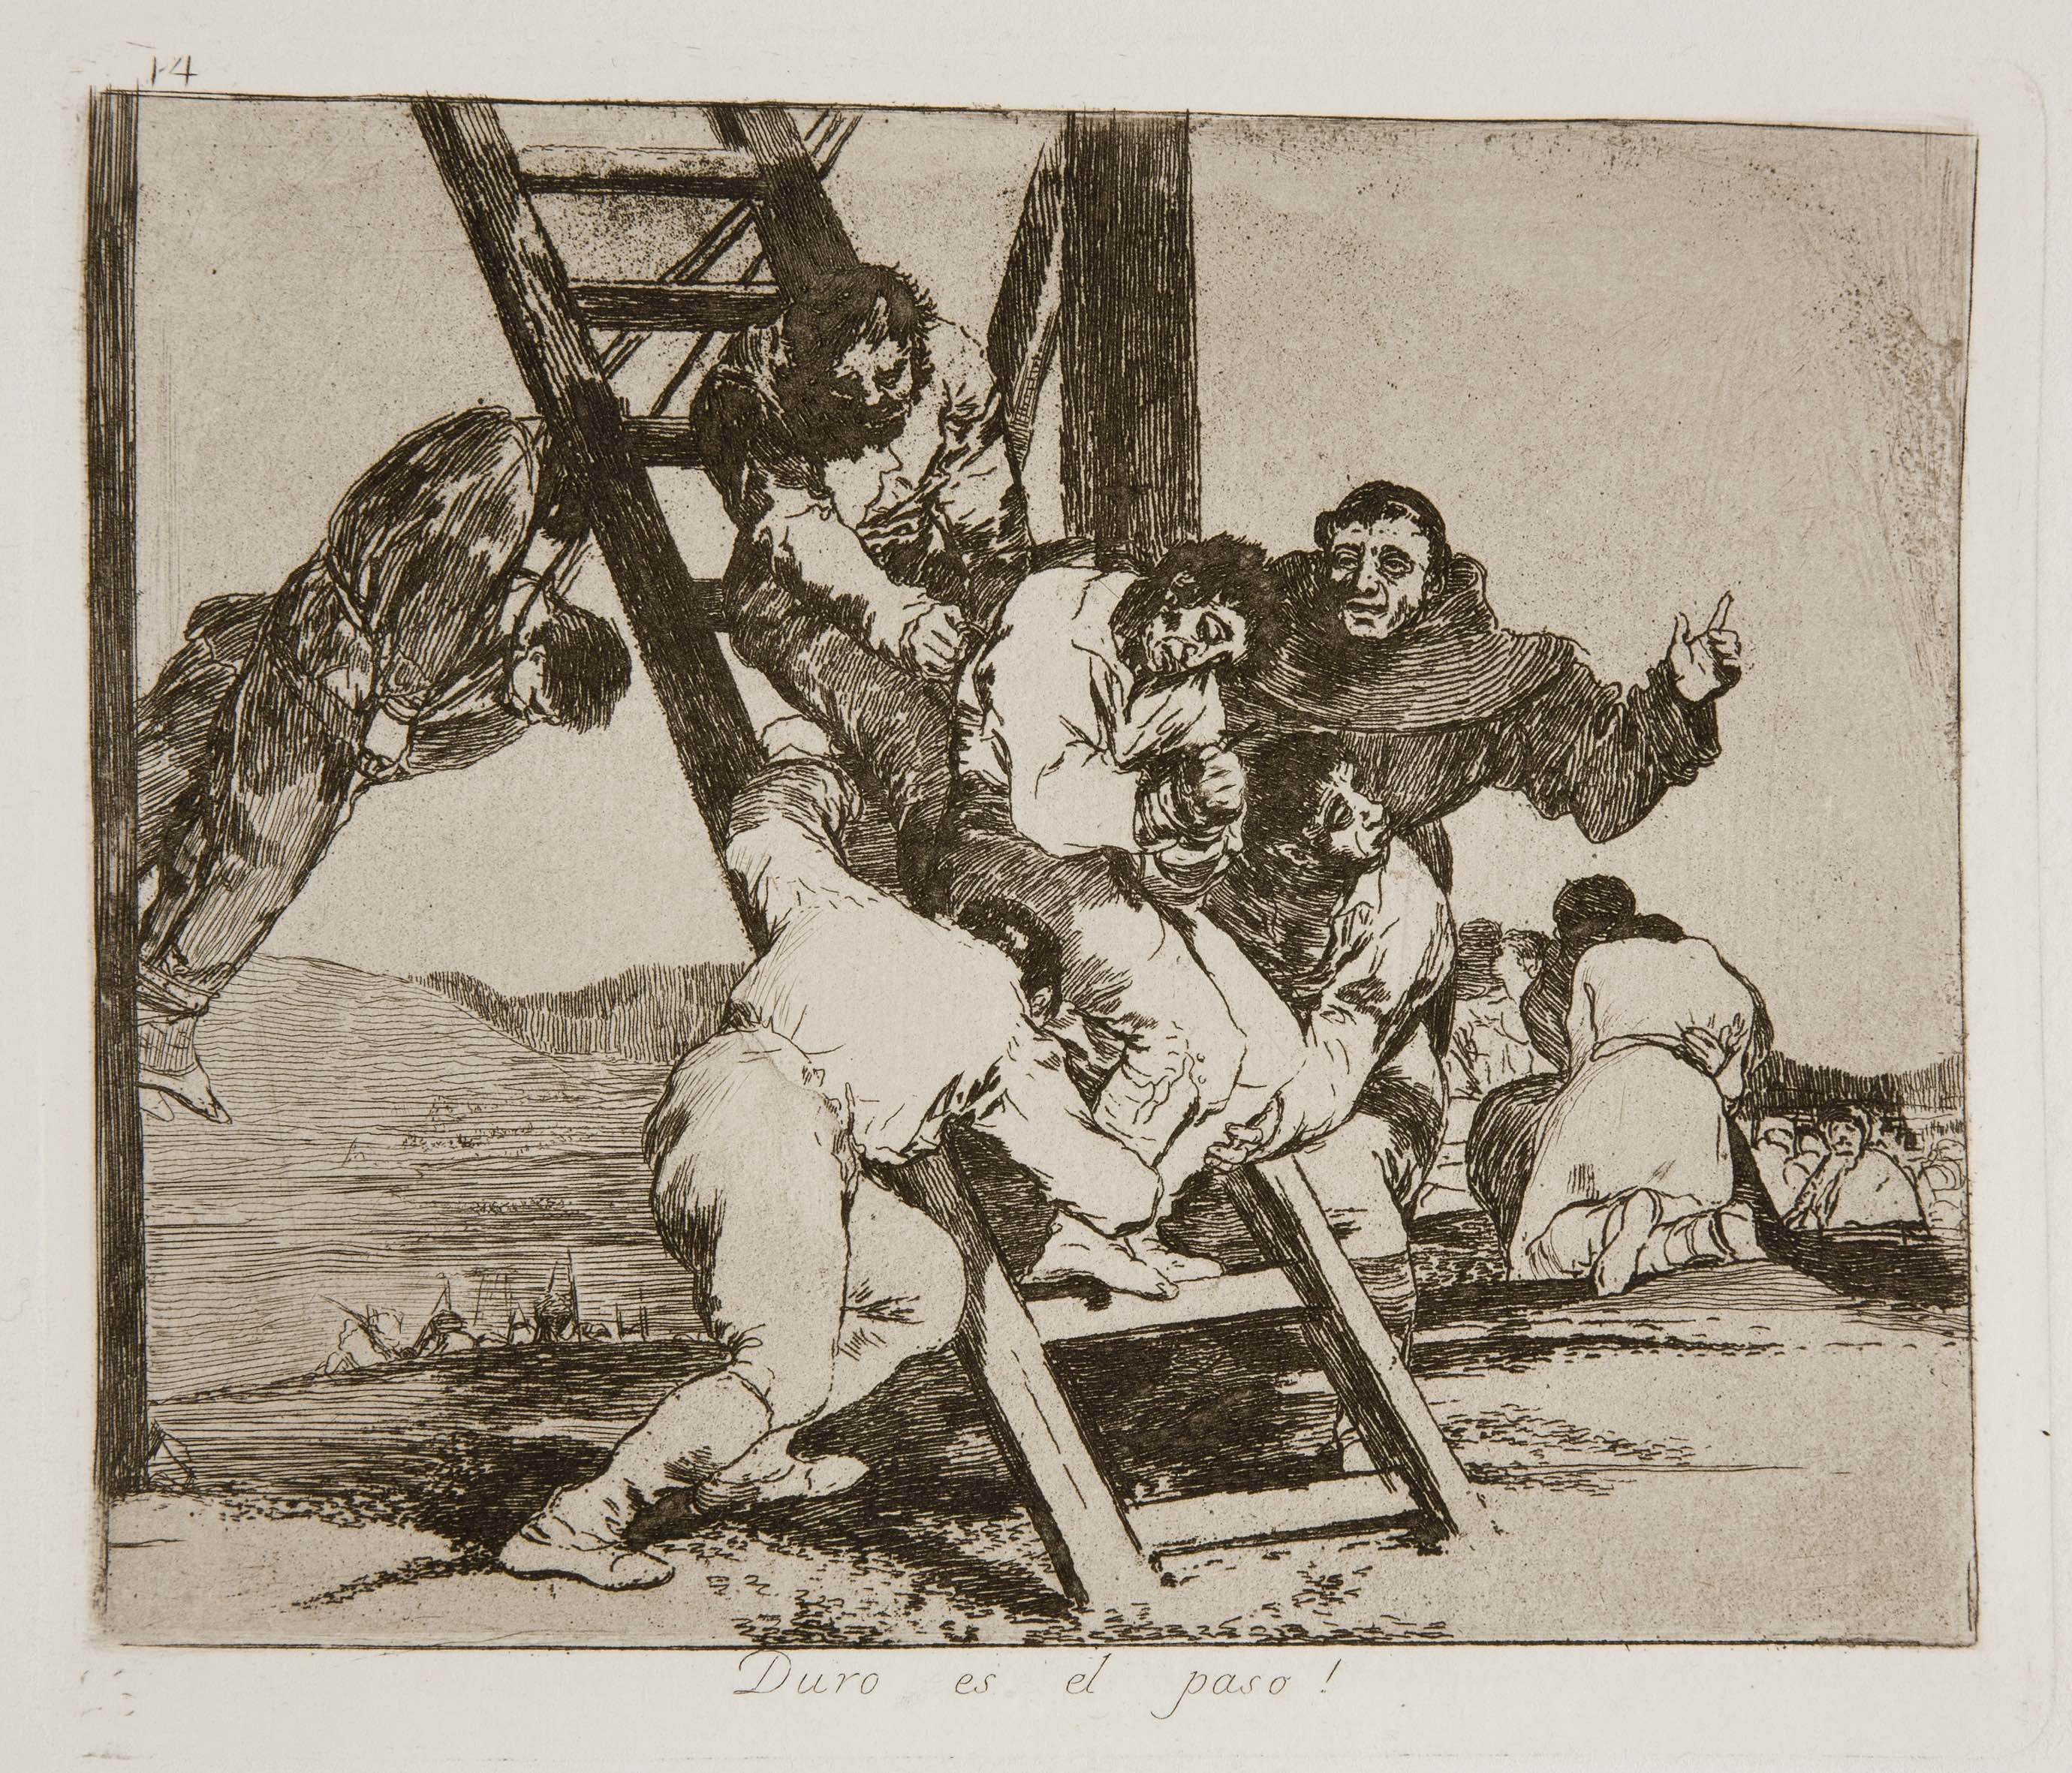 Francisco de Goya, ¡Duro es el paso! (The way is hard!)